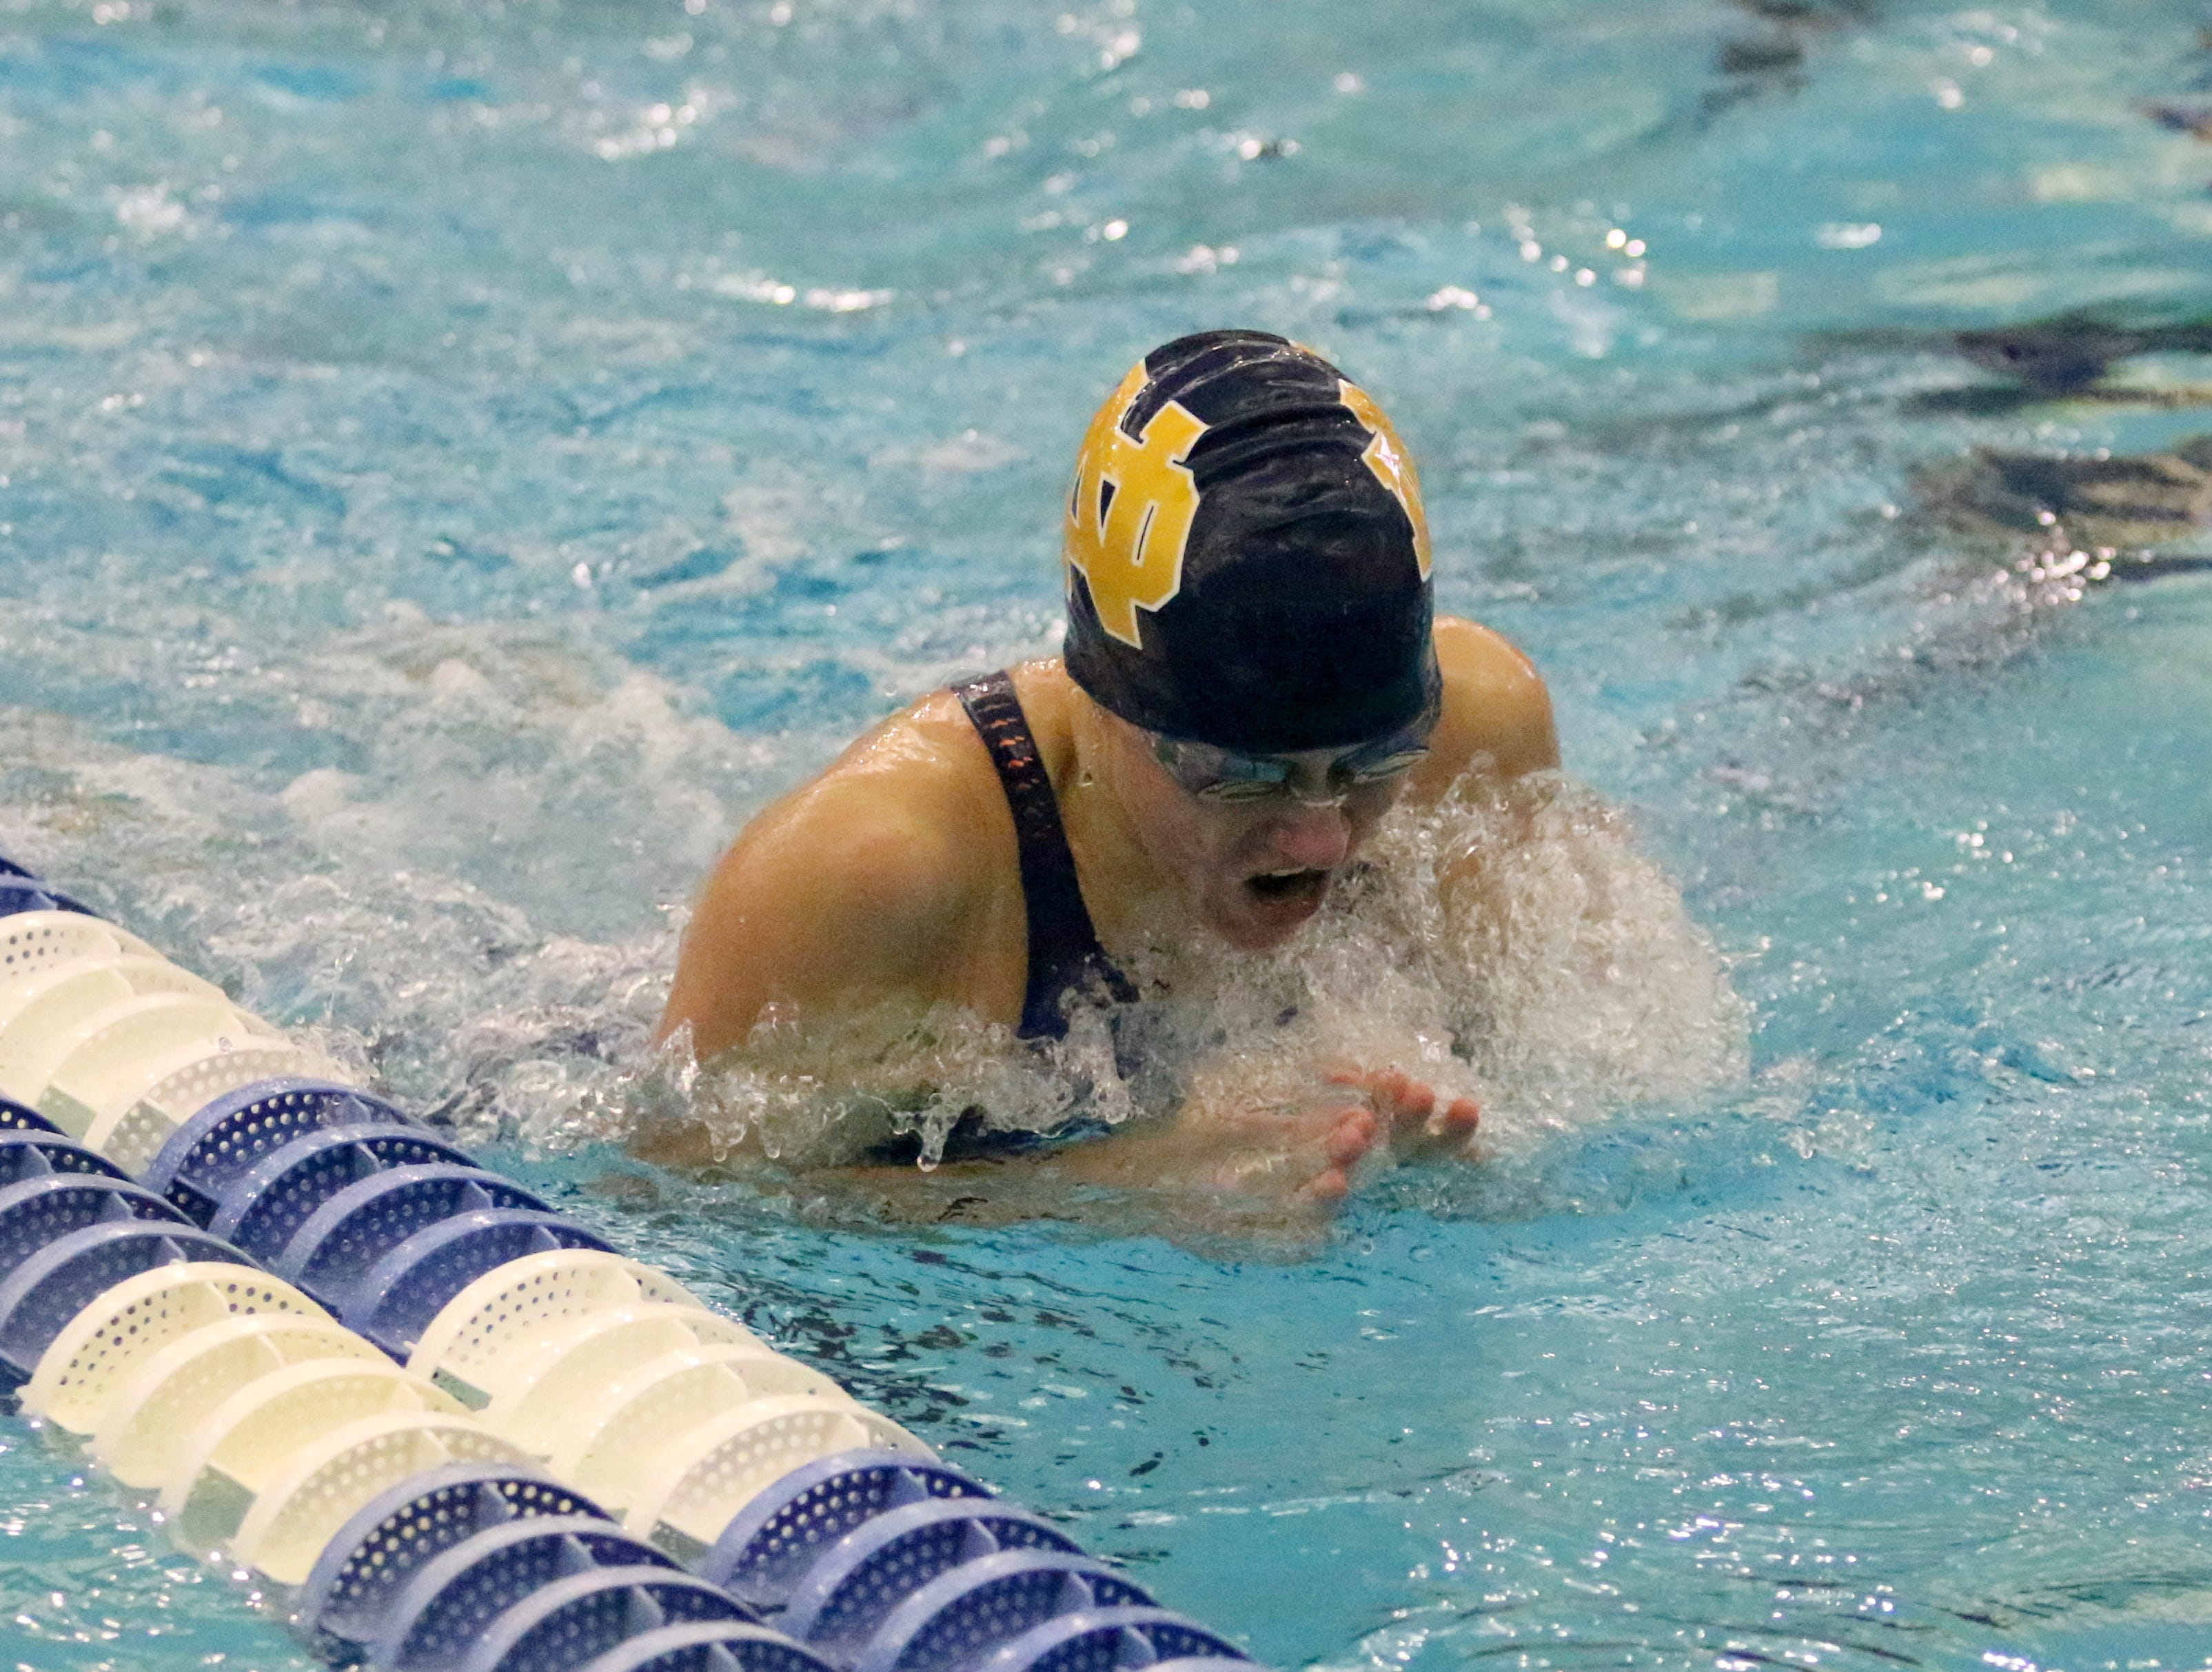 Action from the final day of the New York State Girls Swimming and Diving Championships on Nov. 17, 2018 at Ithaca College.